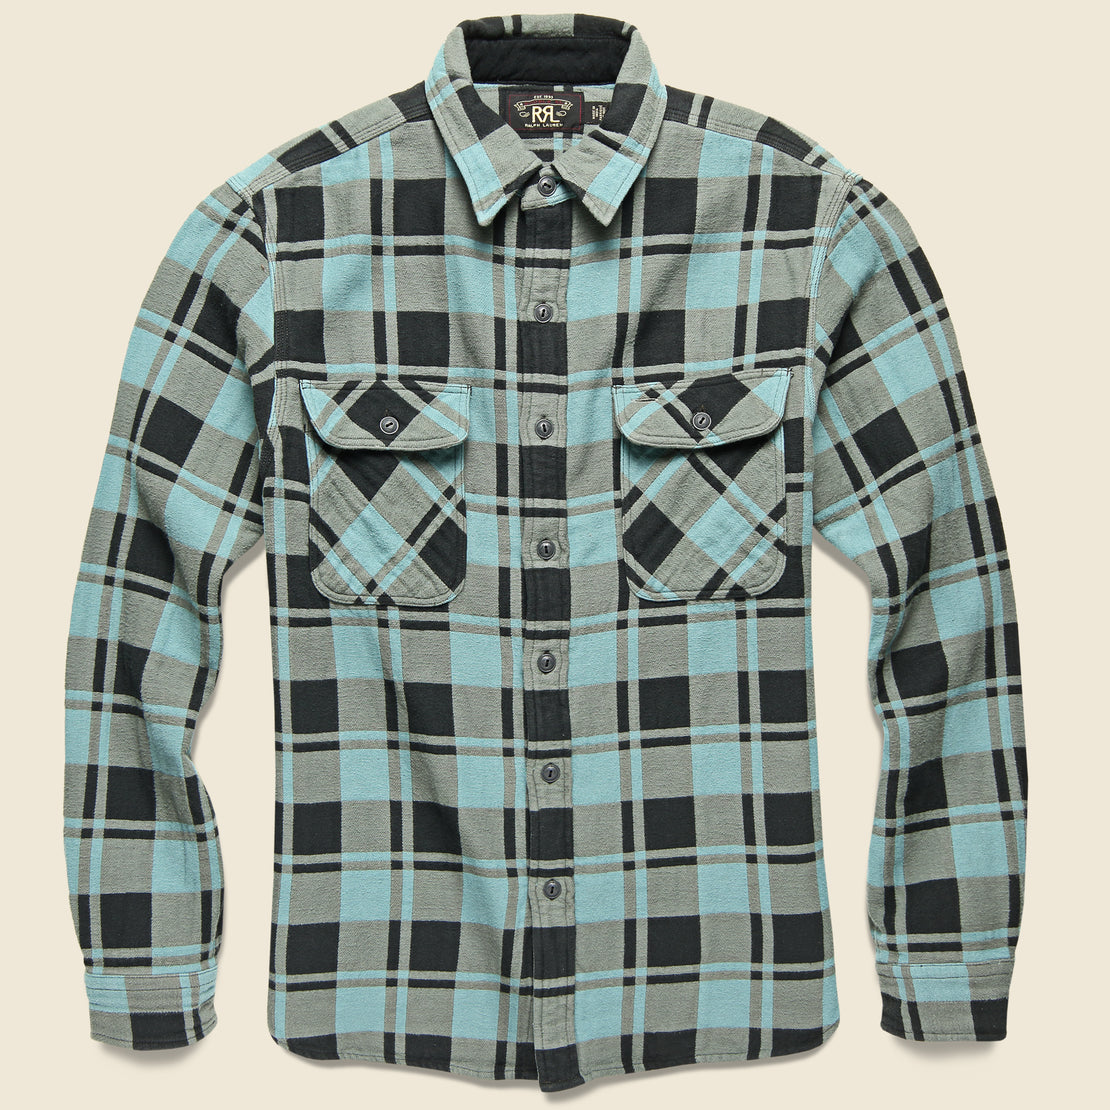 RRL Plaid Jacquard Flannel Workshirt - Turquoise/Sulphur